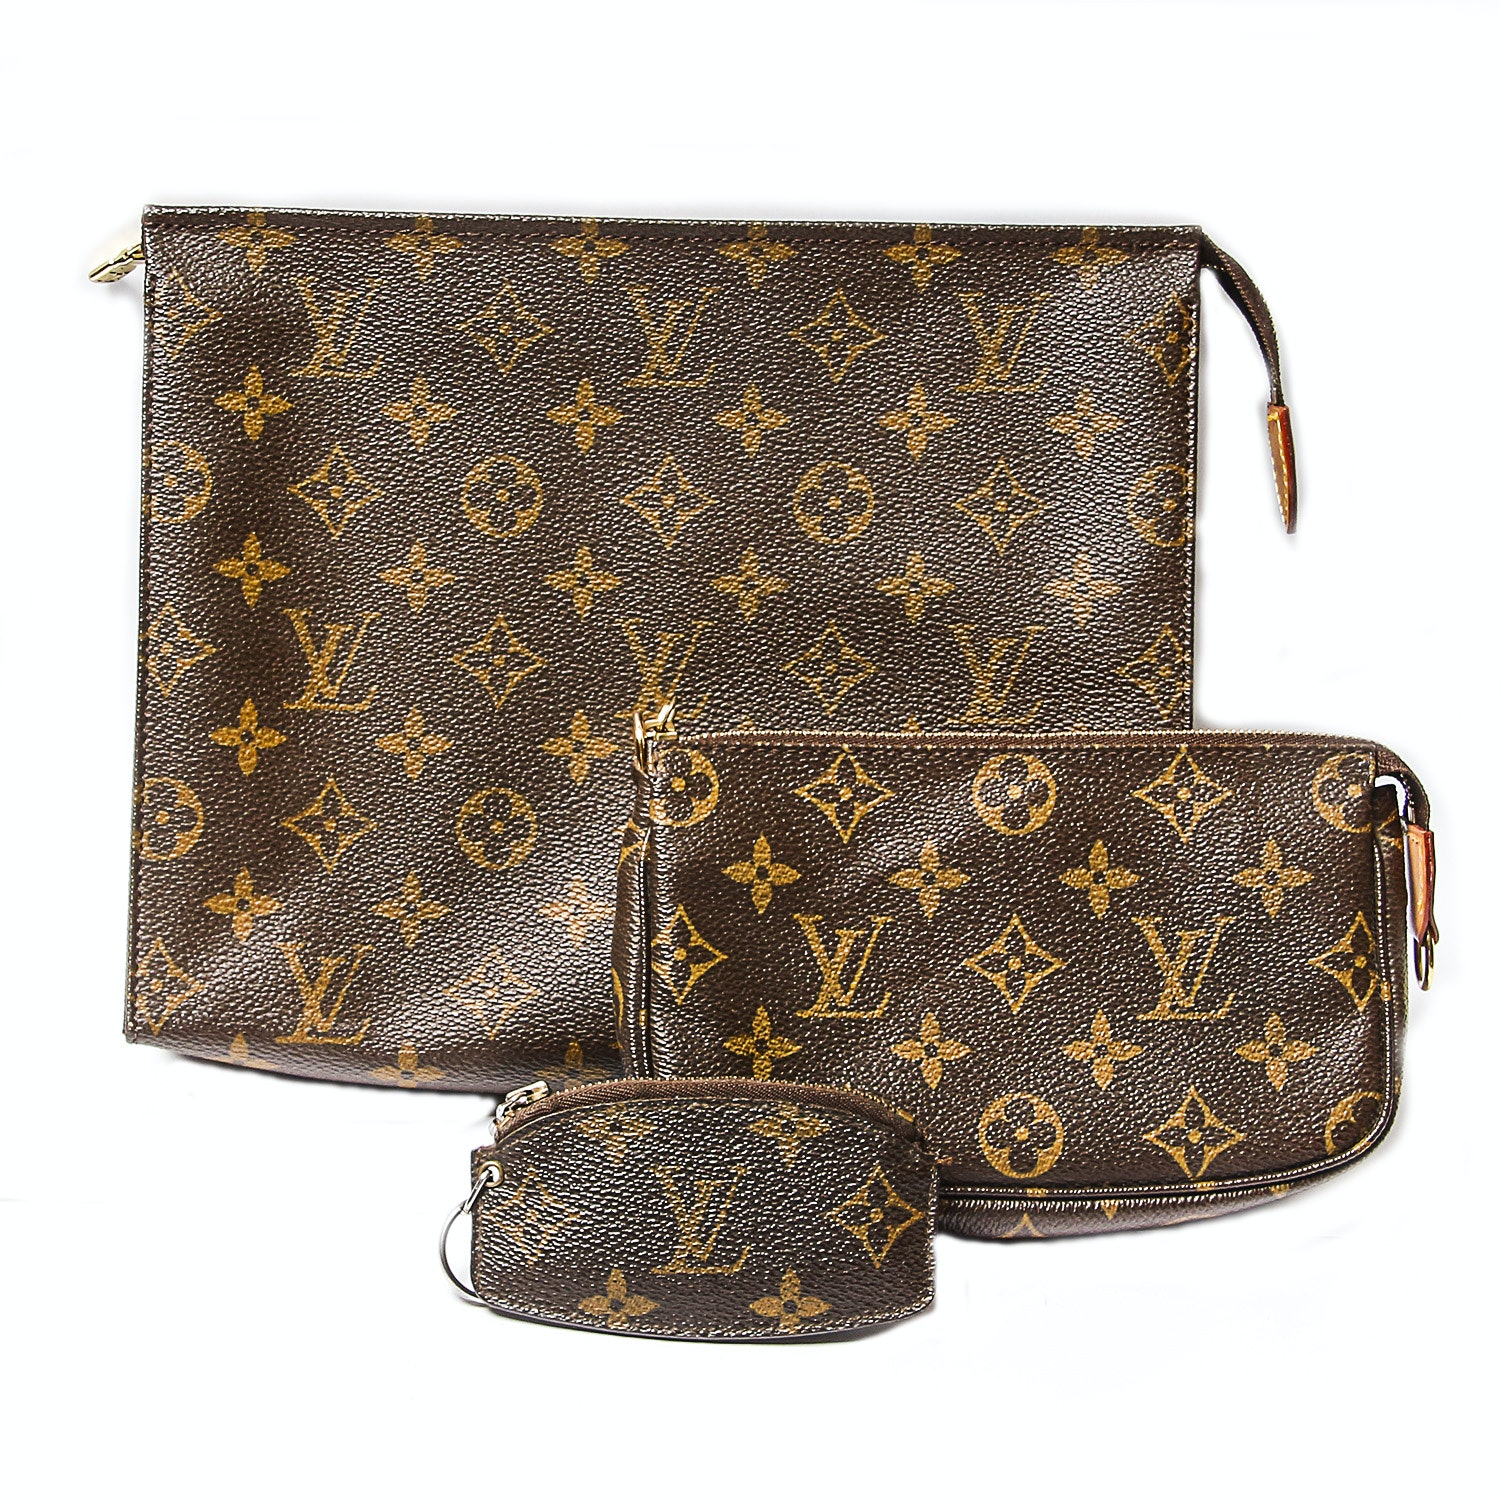 Louis Vuitton Pouch, Cosmetics Bag and Coin Purse